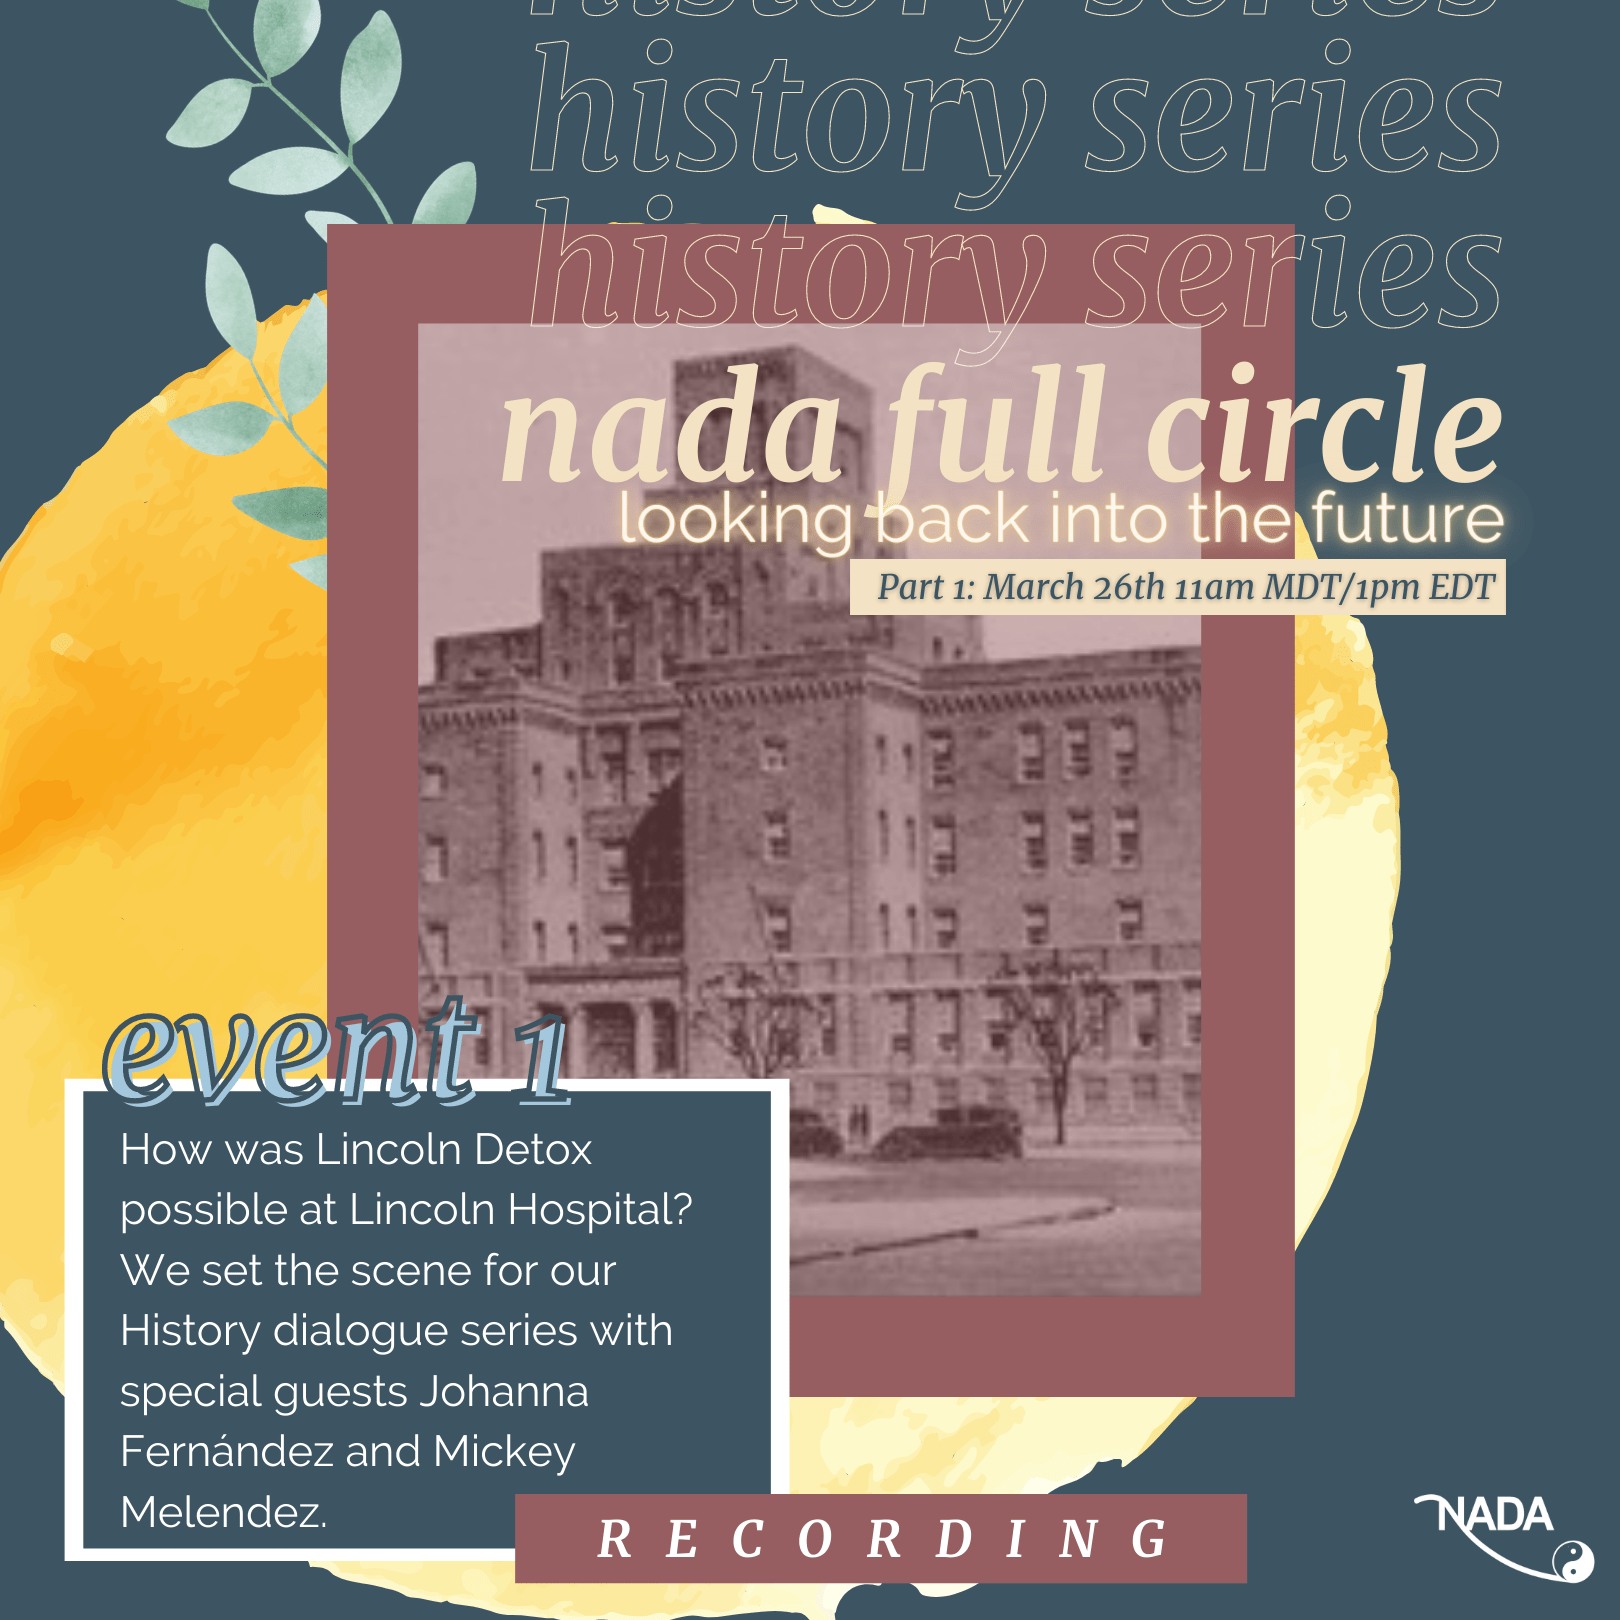 NADA Full Circle: Looking Back into the Future (Part 1 Recording)